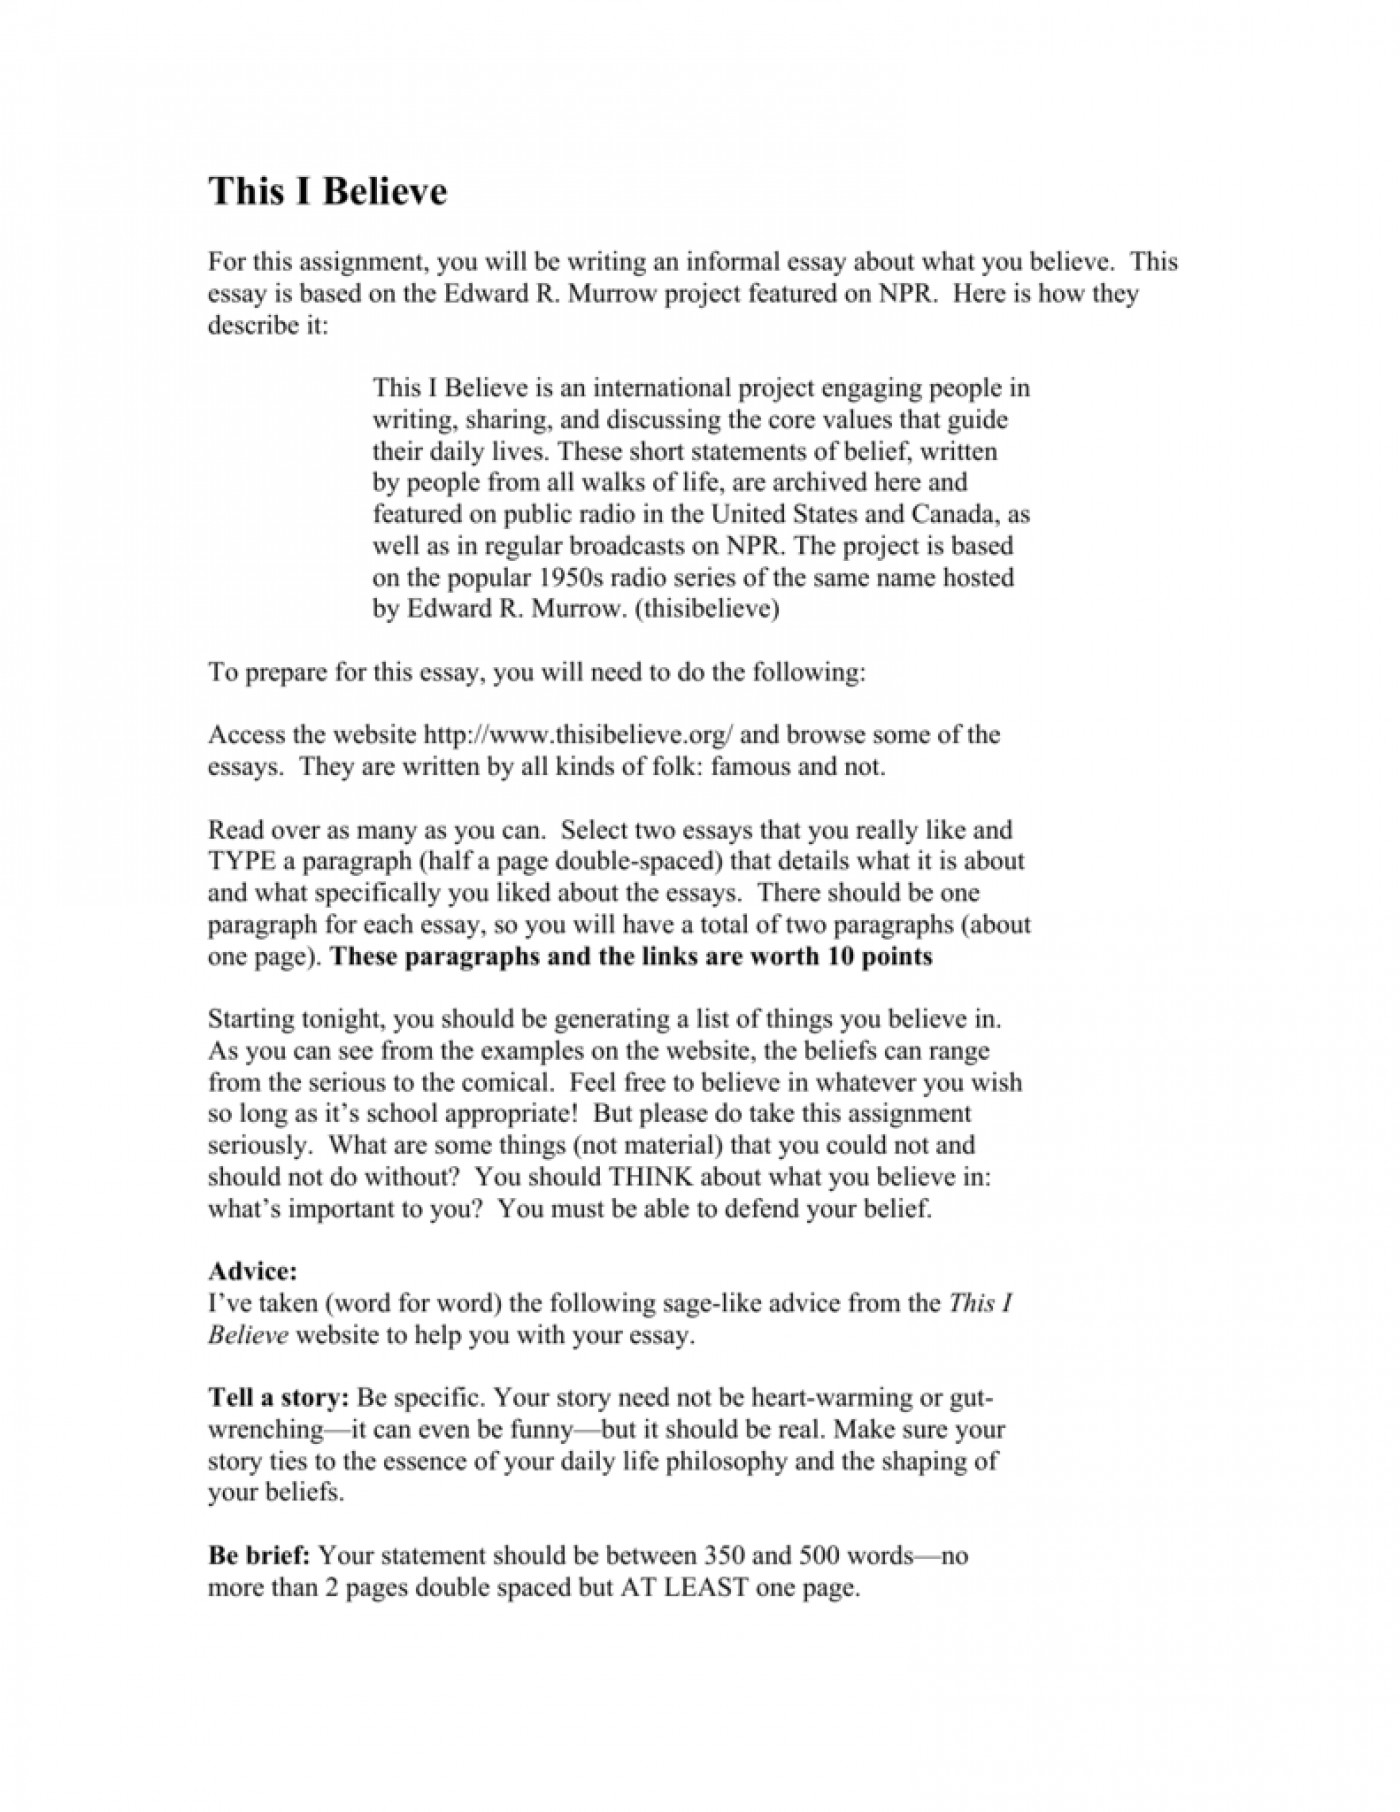 009 Essay Example 008807220 1 I Belive Surprising Essays Believe About Sports Ideas 1400